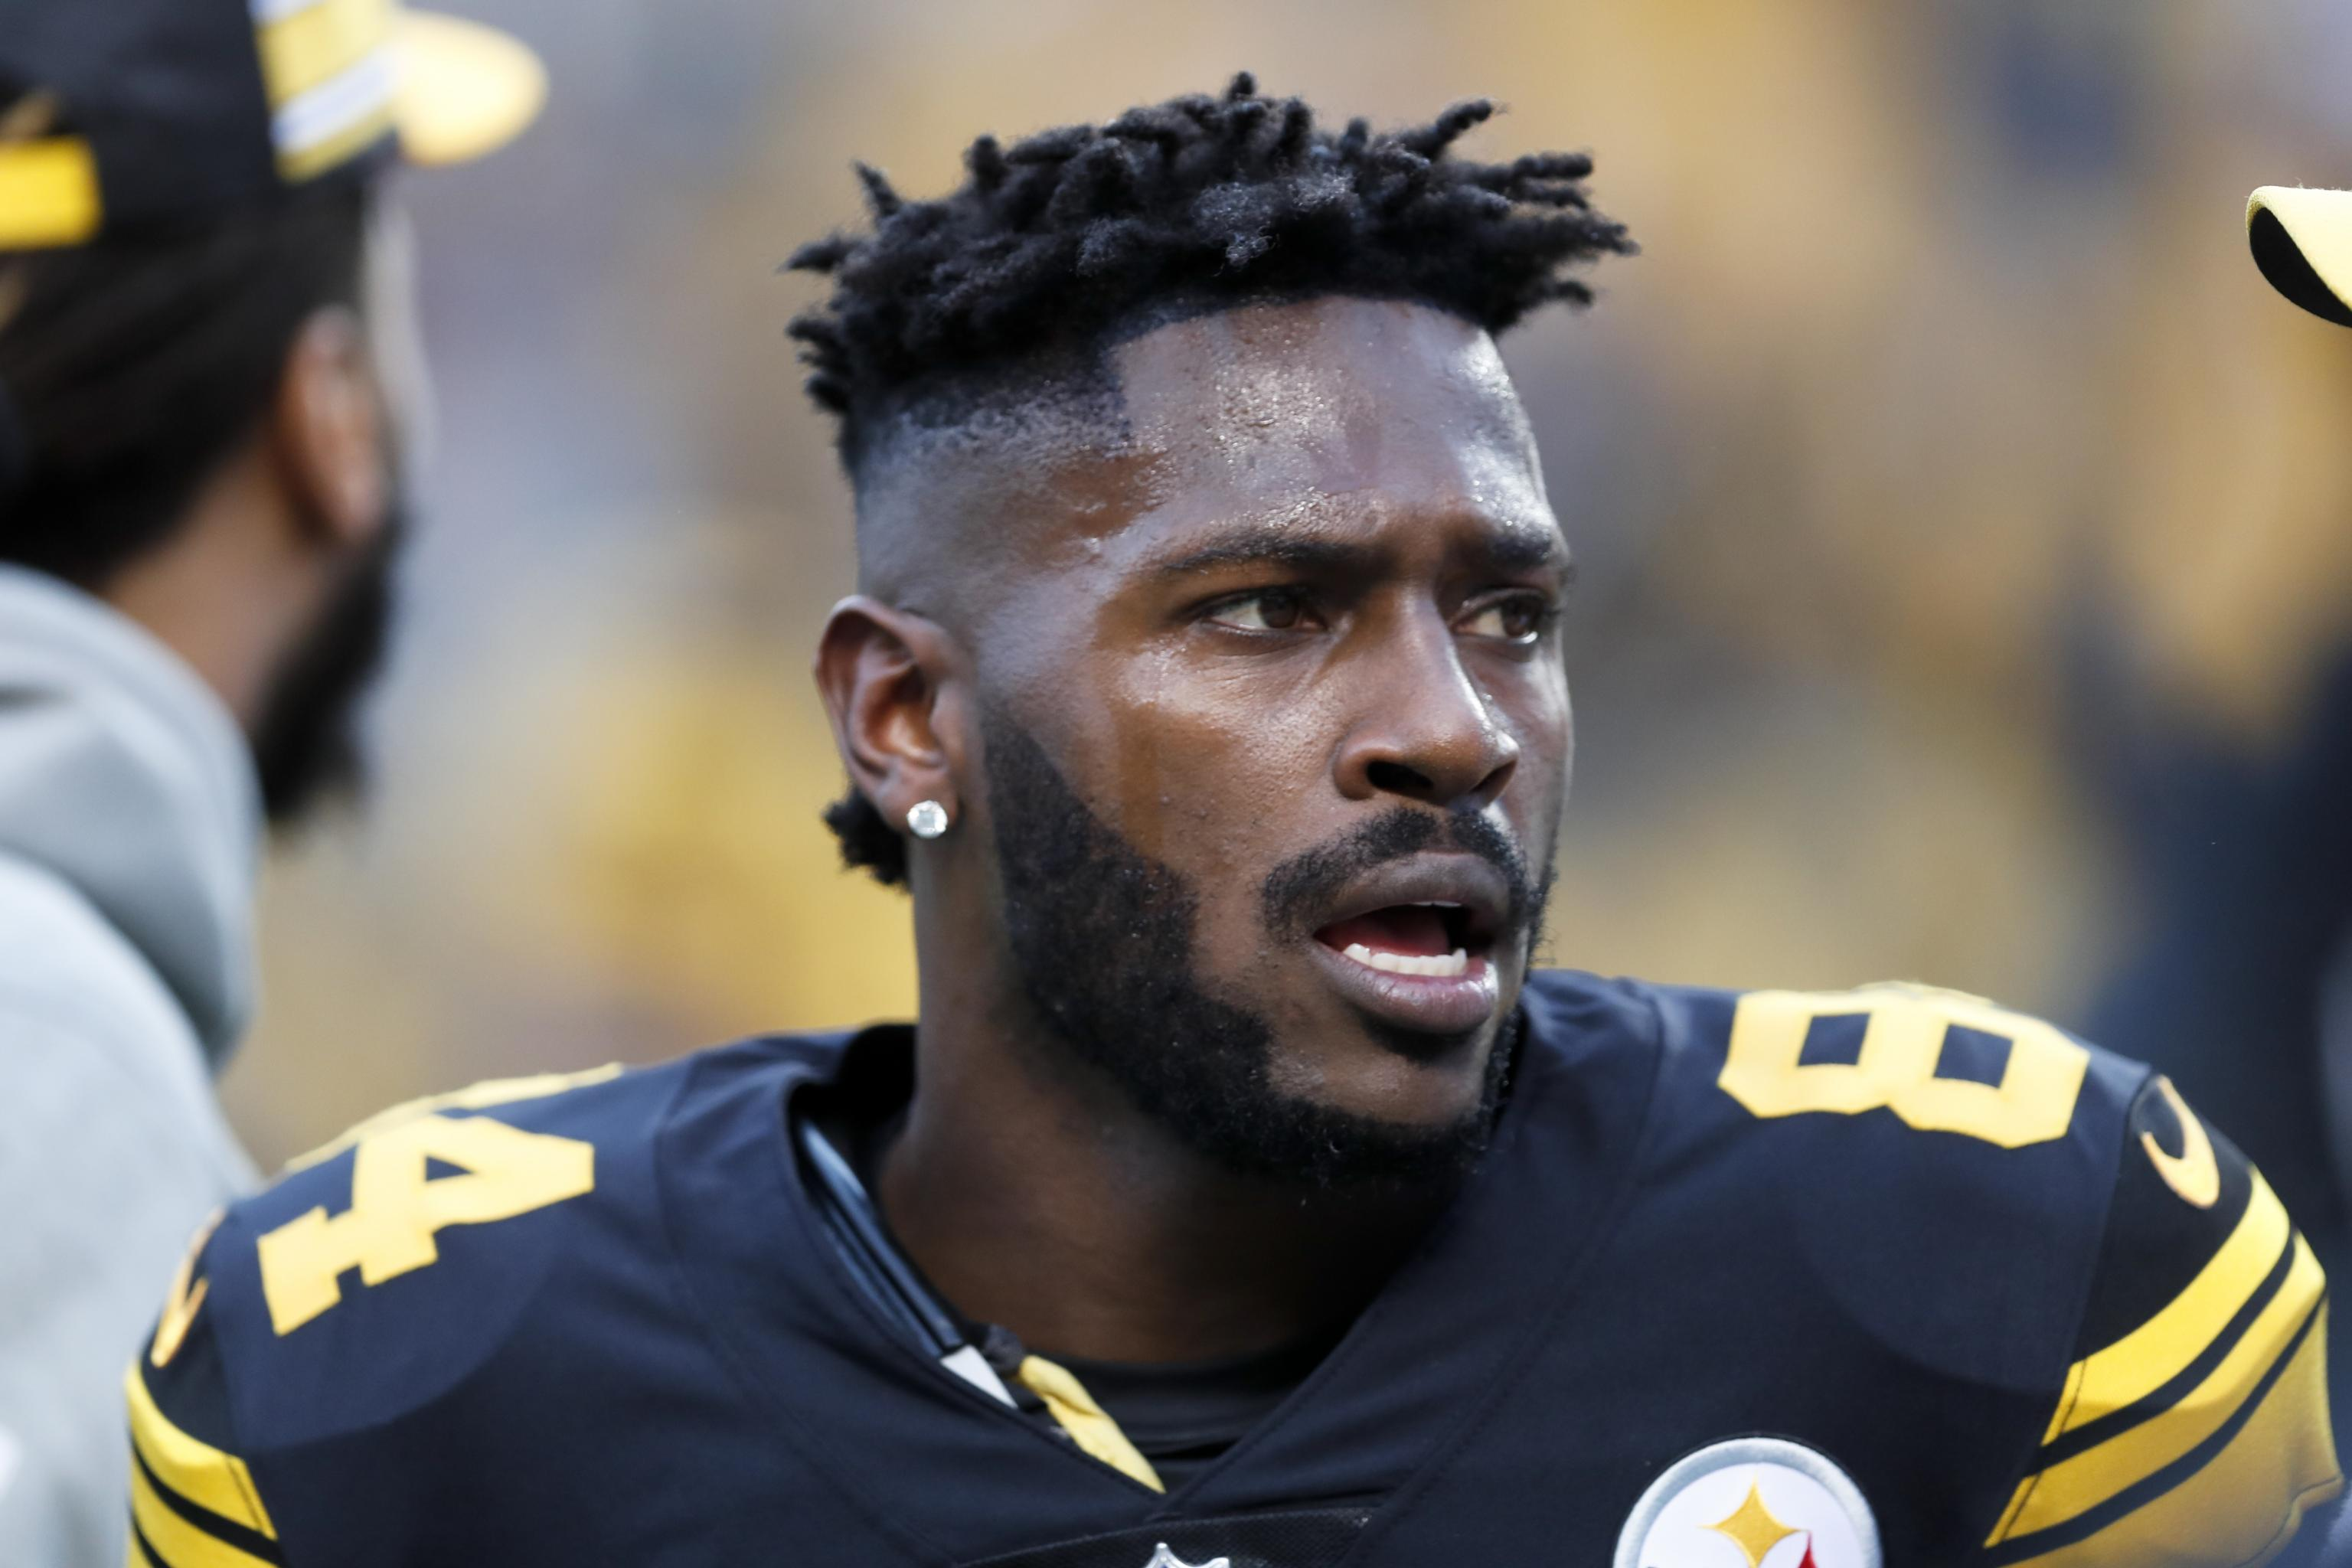 Nfl To Investigate Antonio Brown Allegedly Shoving Woman In Domestic Dispute Bleacher Report Latest News Videos And Highlights